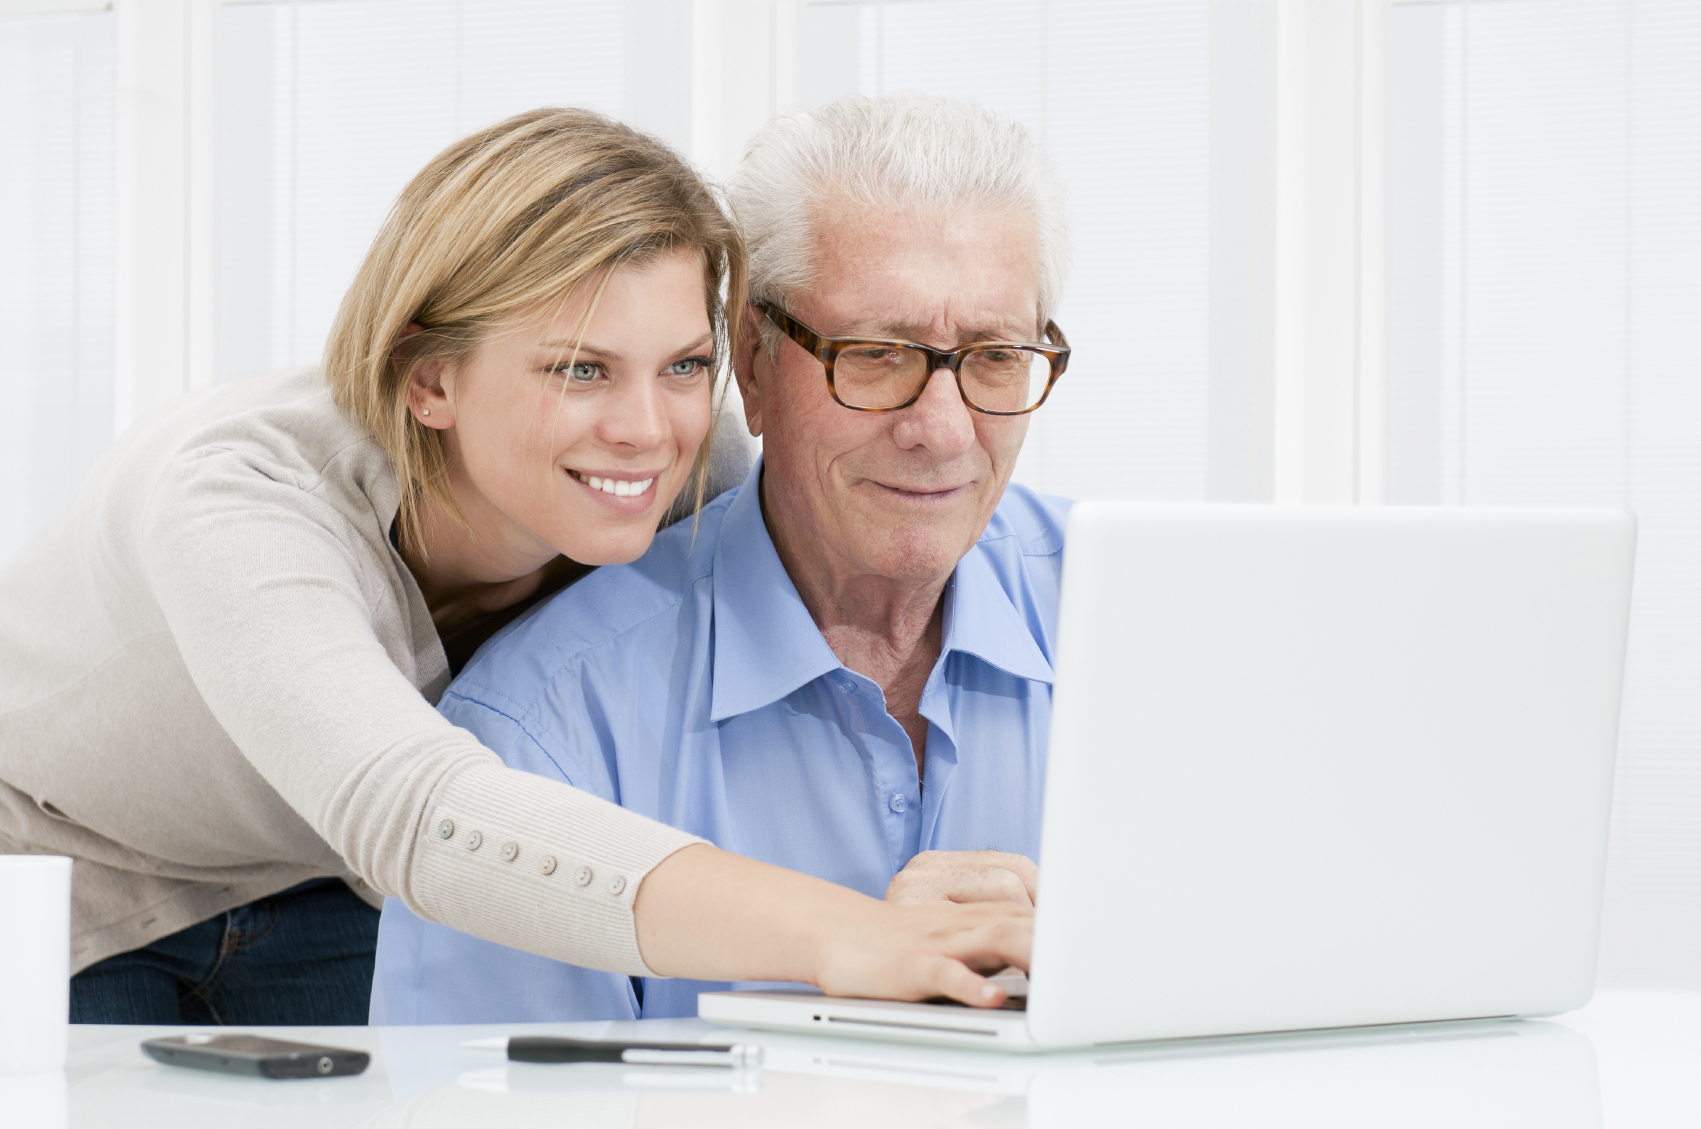 Your parents are aging. Get their information now while they can still tell you what you need to know.